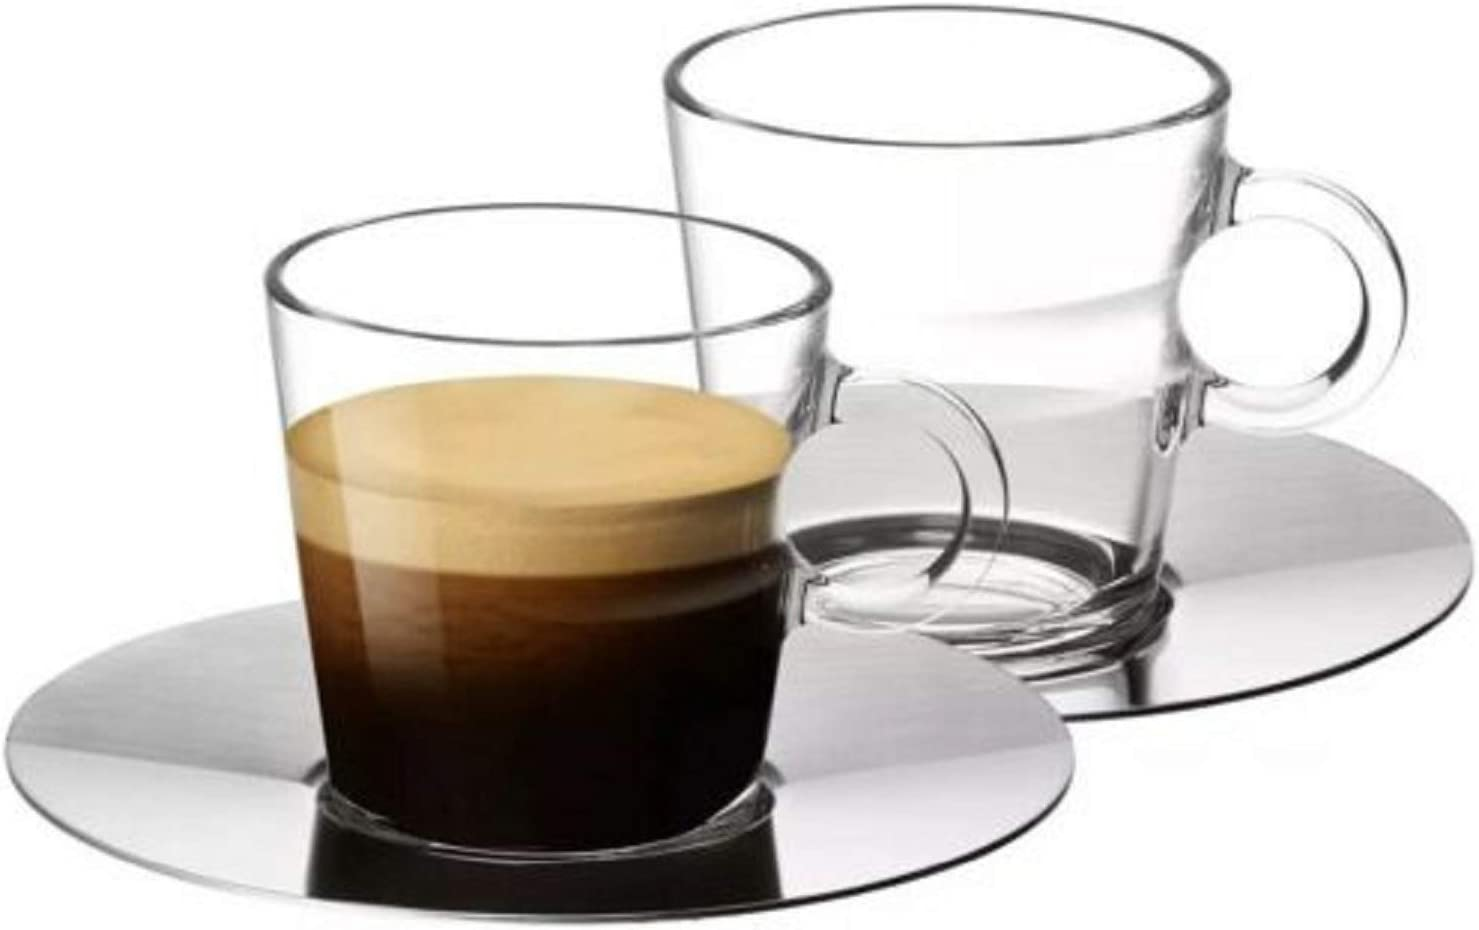 Nespresso View Collection: Set of 2 espresso glass cups and saucers (80 ml)